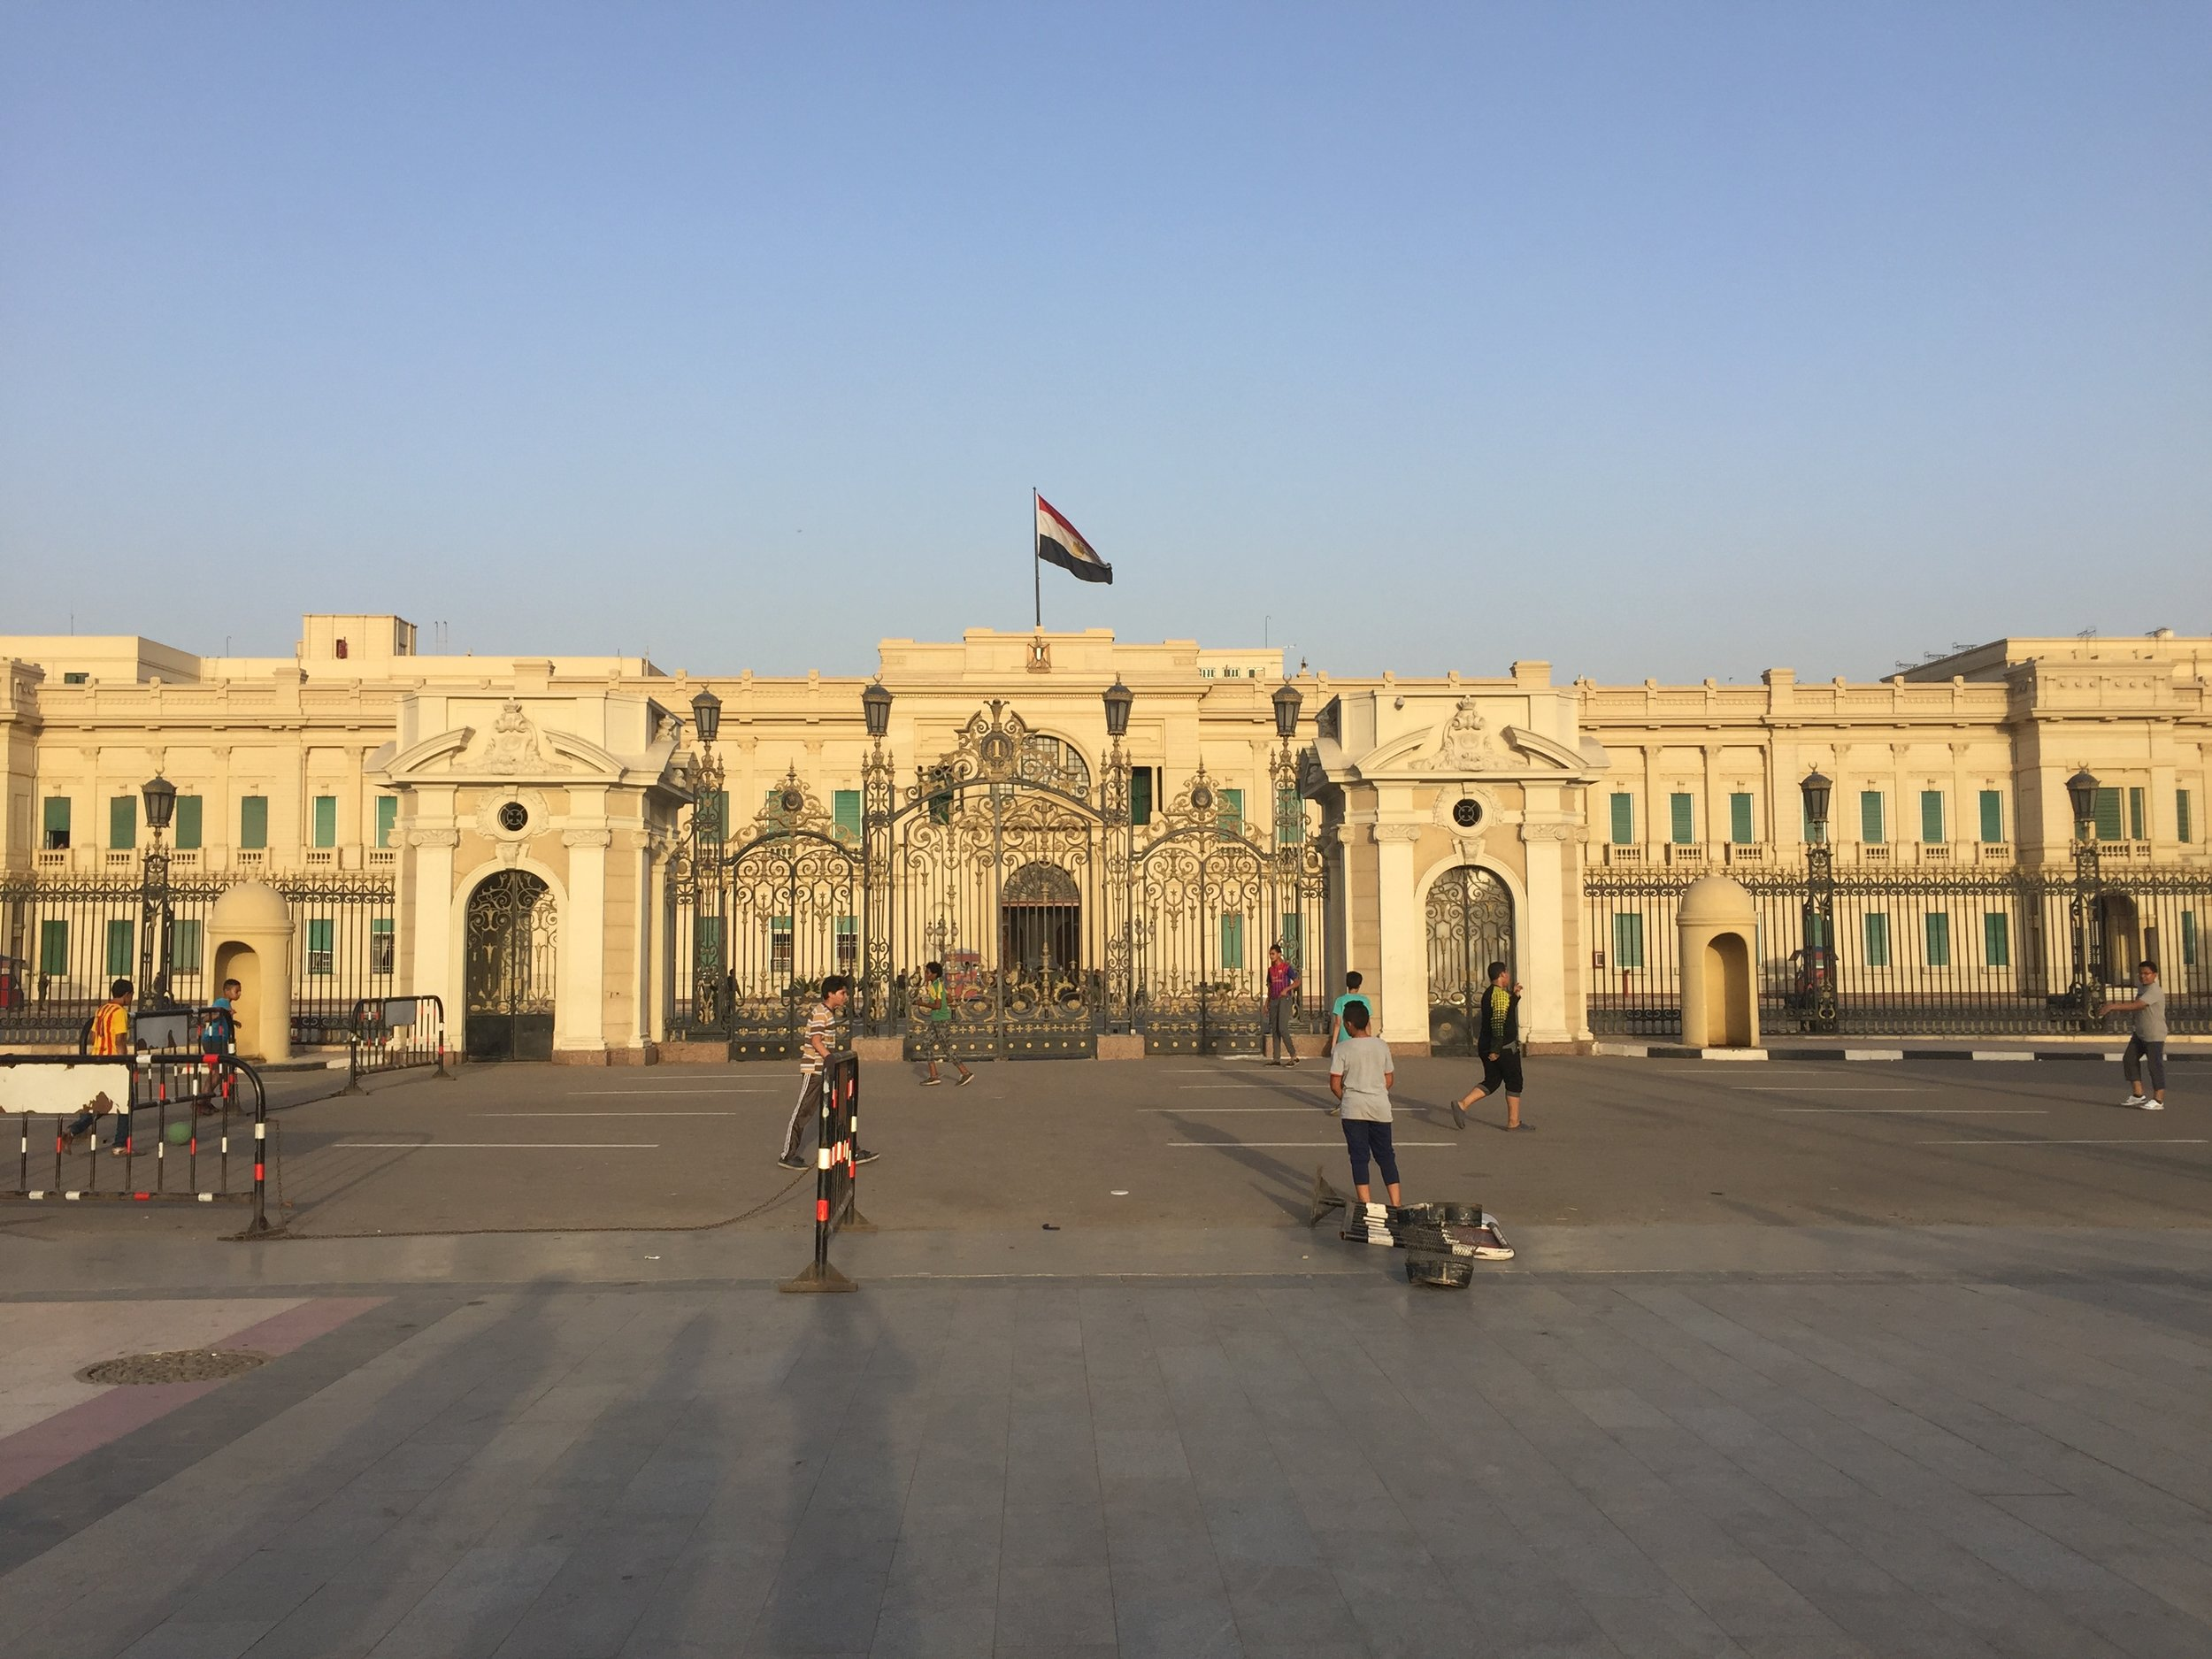 Kids play soccer in front of the Abdeen Palace, while military guards watch on. The front of the palace, normally busy with people, stands almost deserted now.